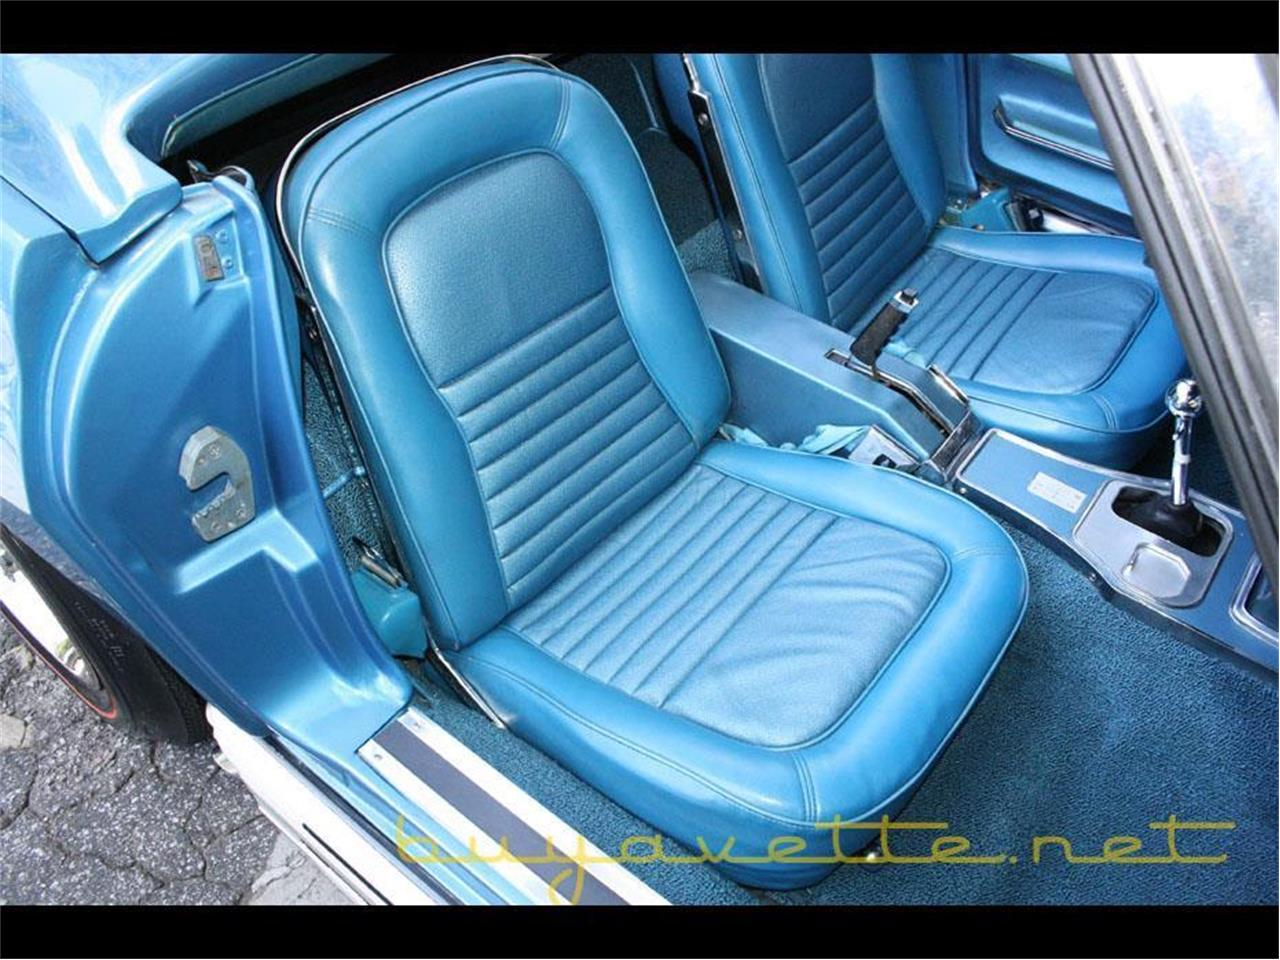 Large Picture of Classic 1967 Corvette - $99,875.00 Offered by Buyavette - PCOC